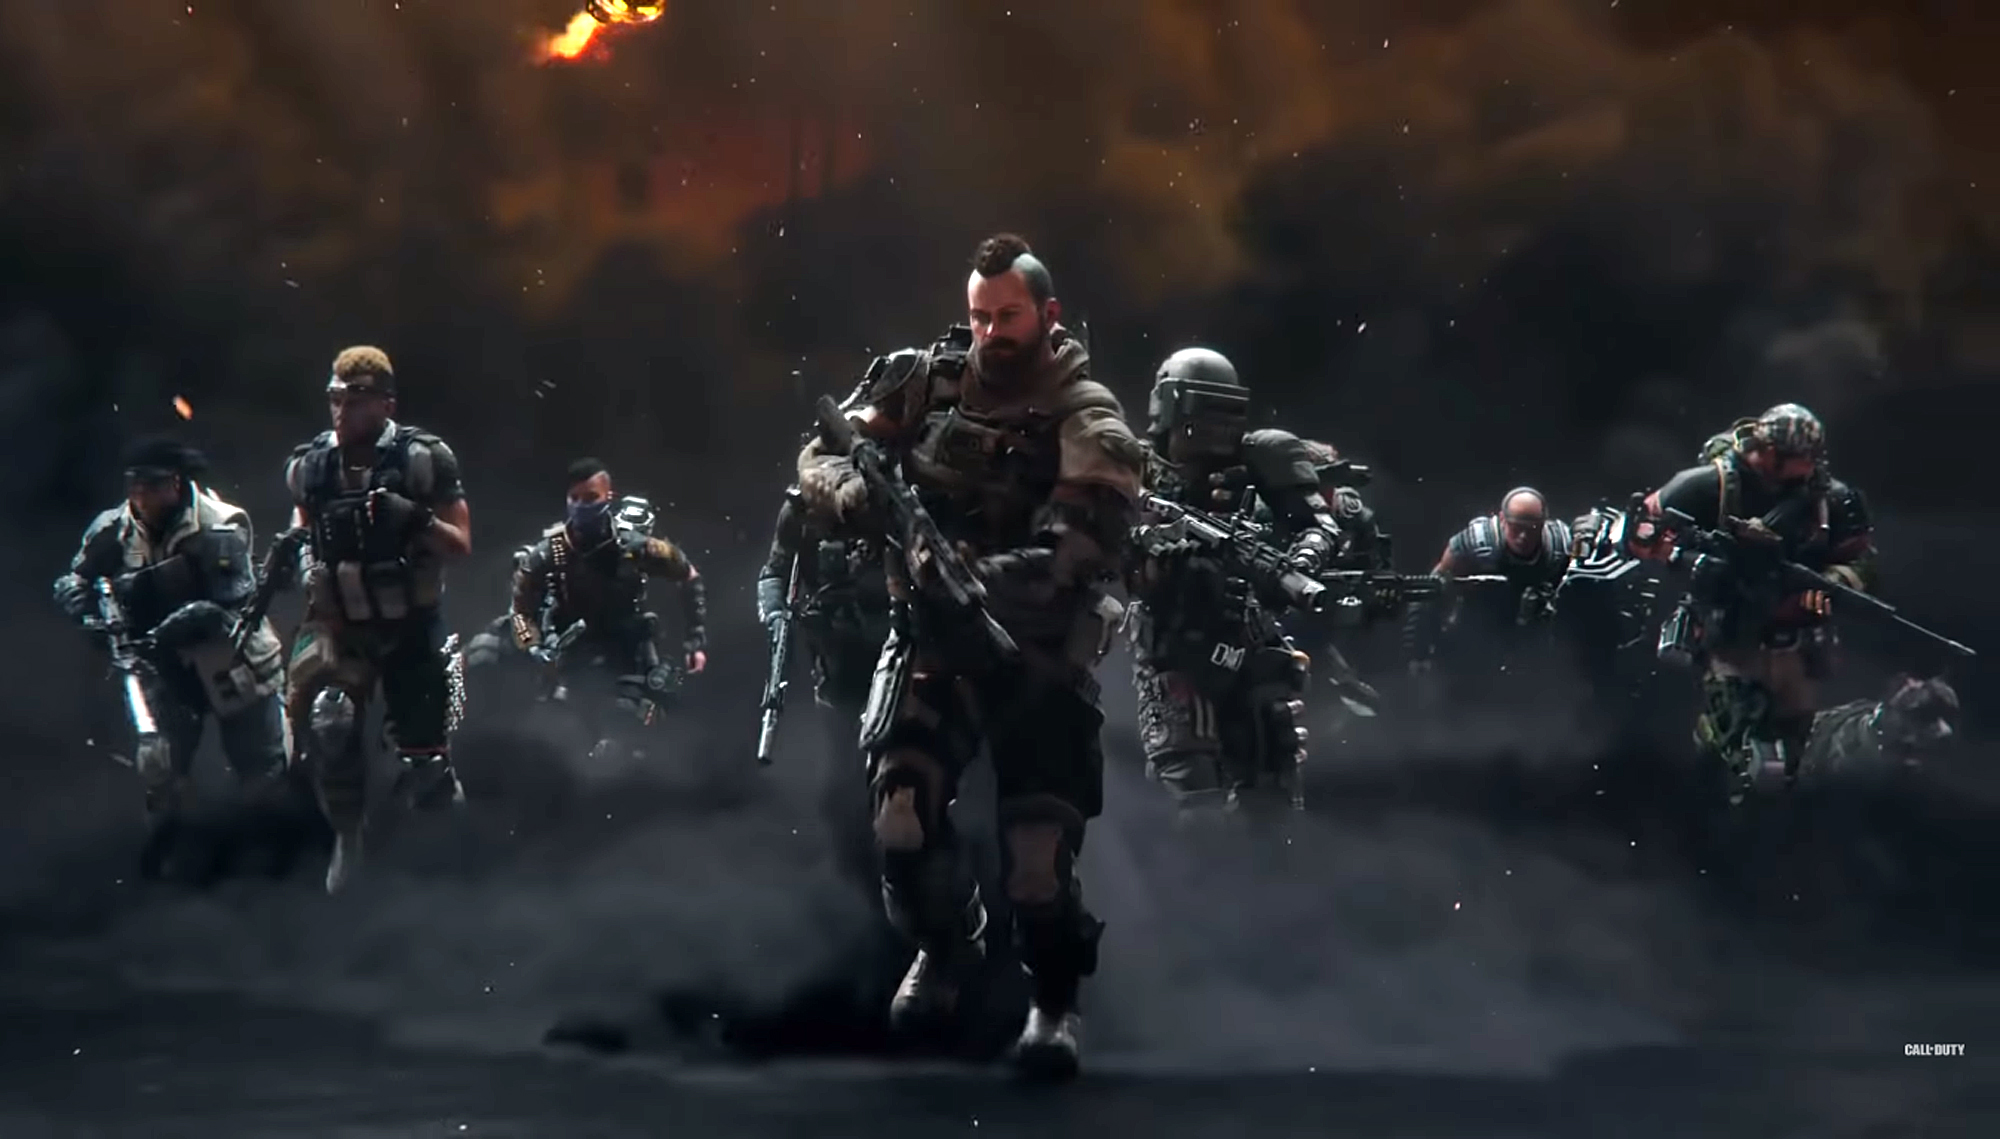 Call Of Duty Black Ops 4 List Of All Specialists Classes And Their